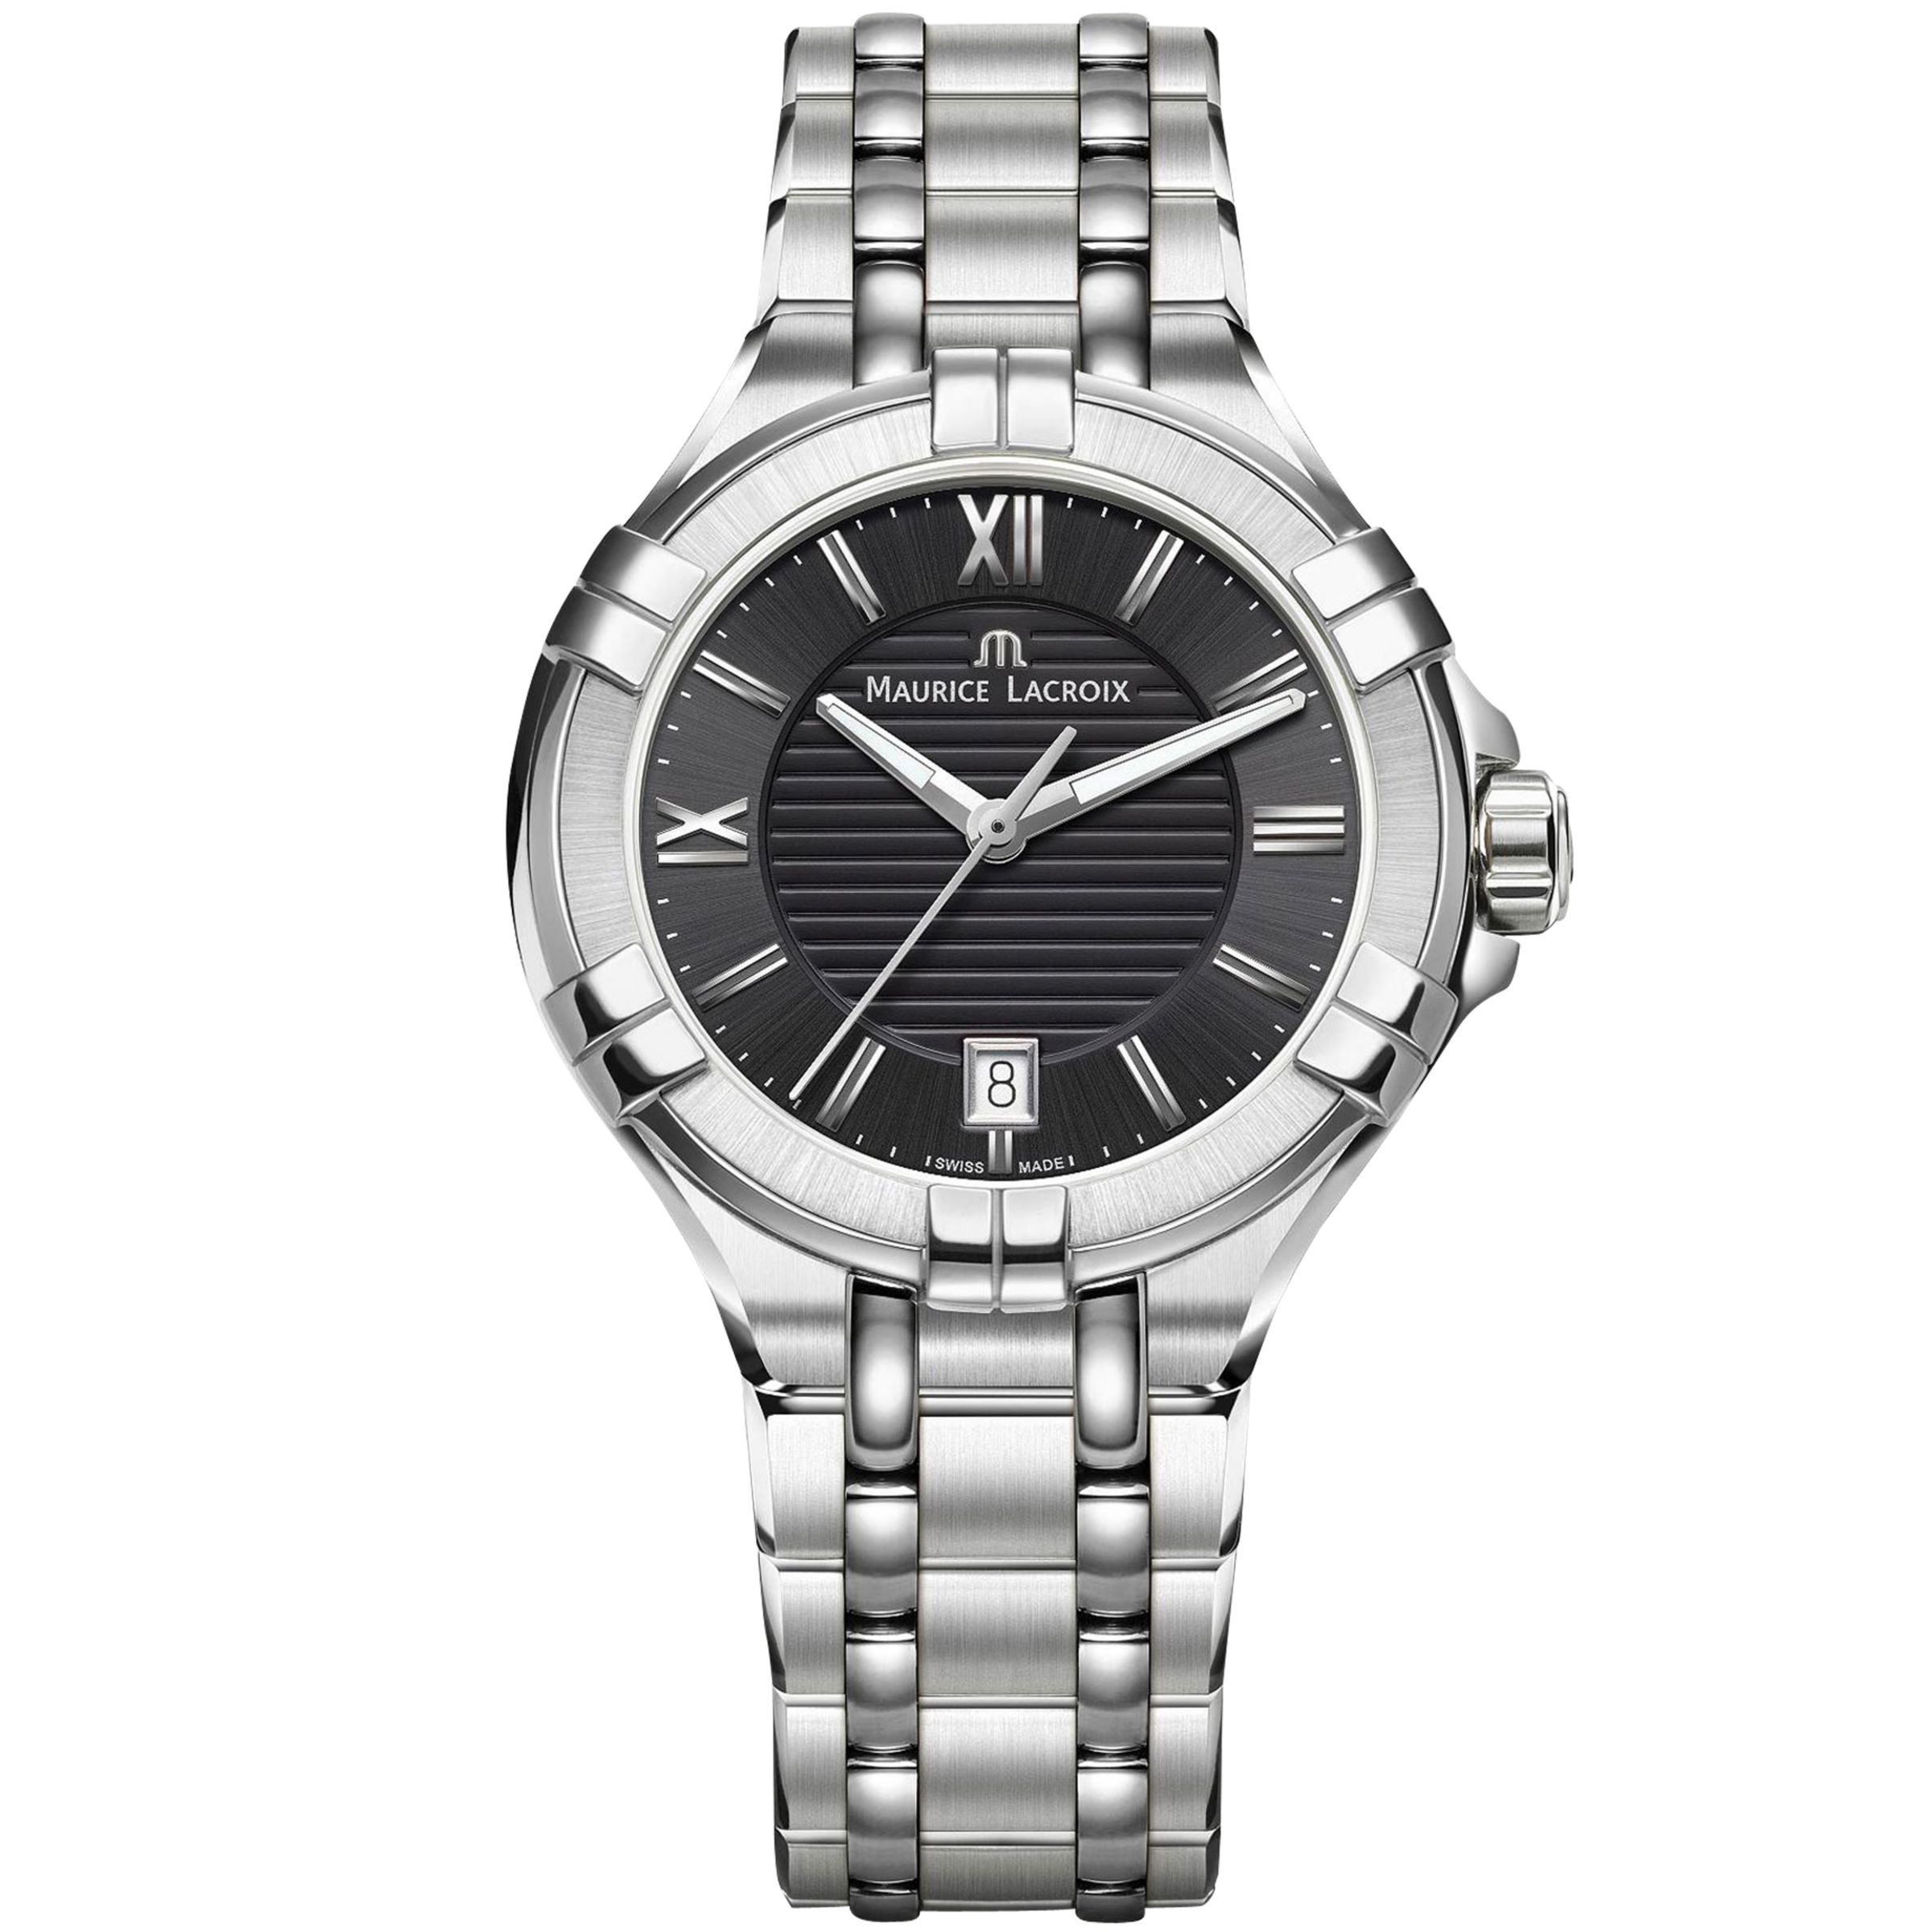 Maurice Lacroix Maurice Lacroix AI1006-SS002-330-1 Men's Stainless Steel Bracelet Strap Watch, Steel